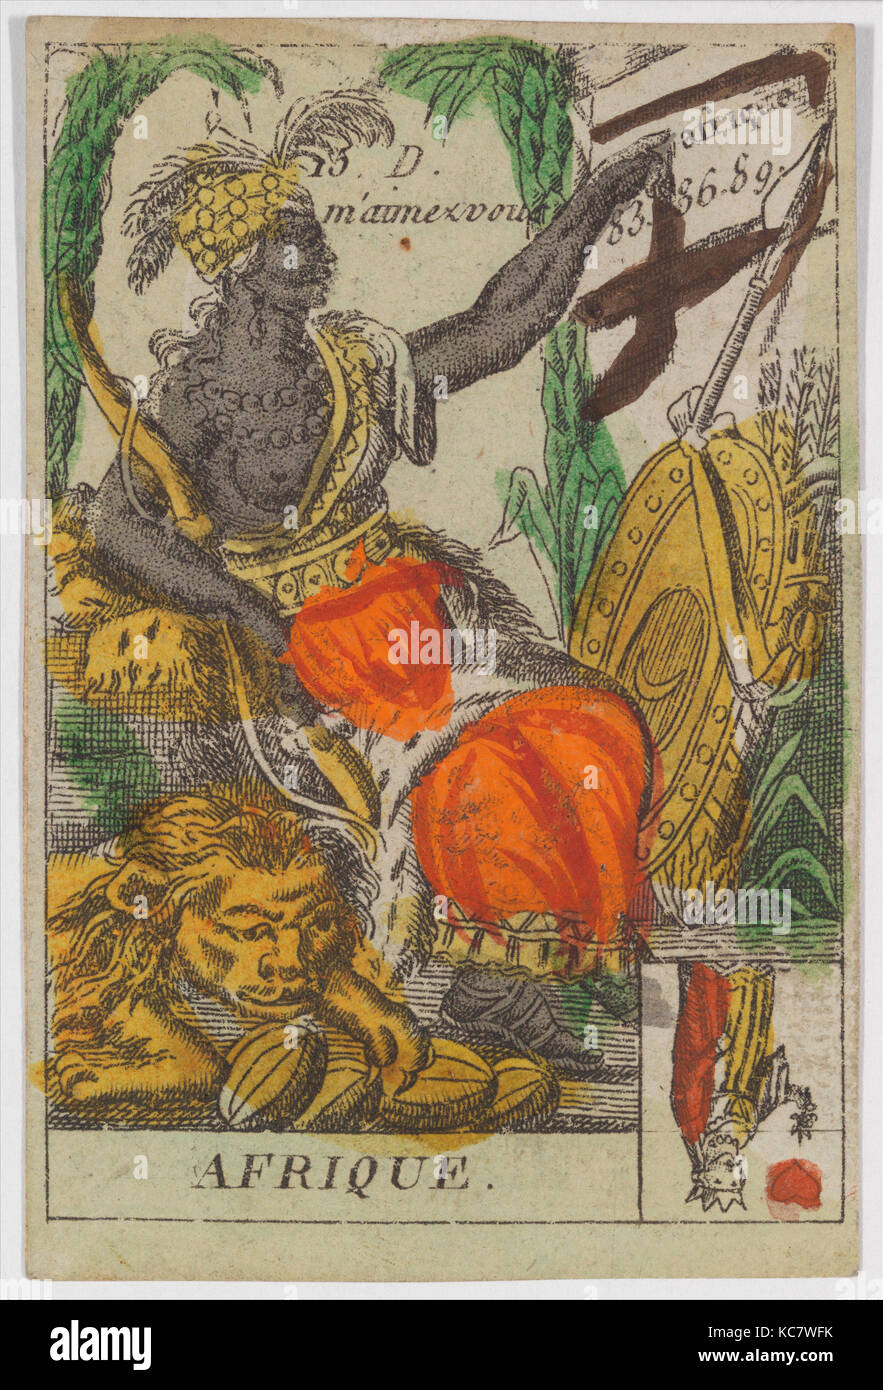 Afrique from Playing Cards (for Quartets) 'Costumes des Peuples Étrangers', Anonymous, French, 18th - Stock Image